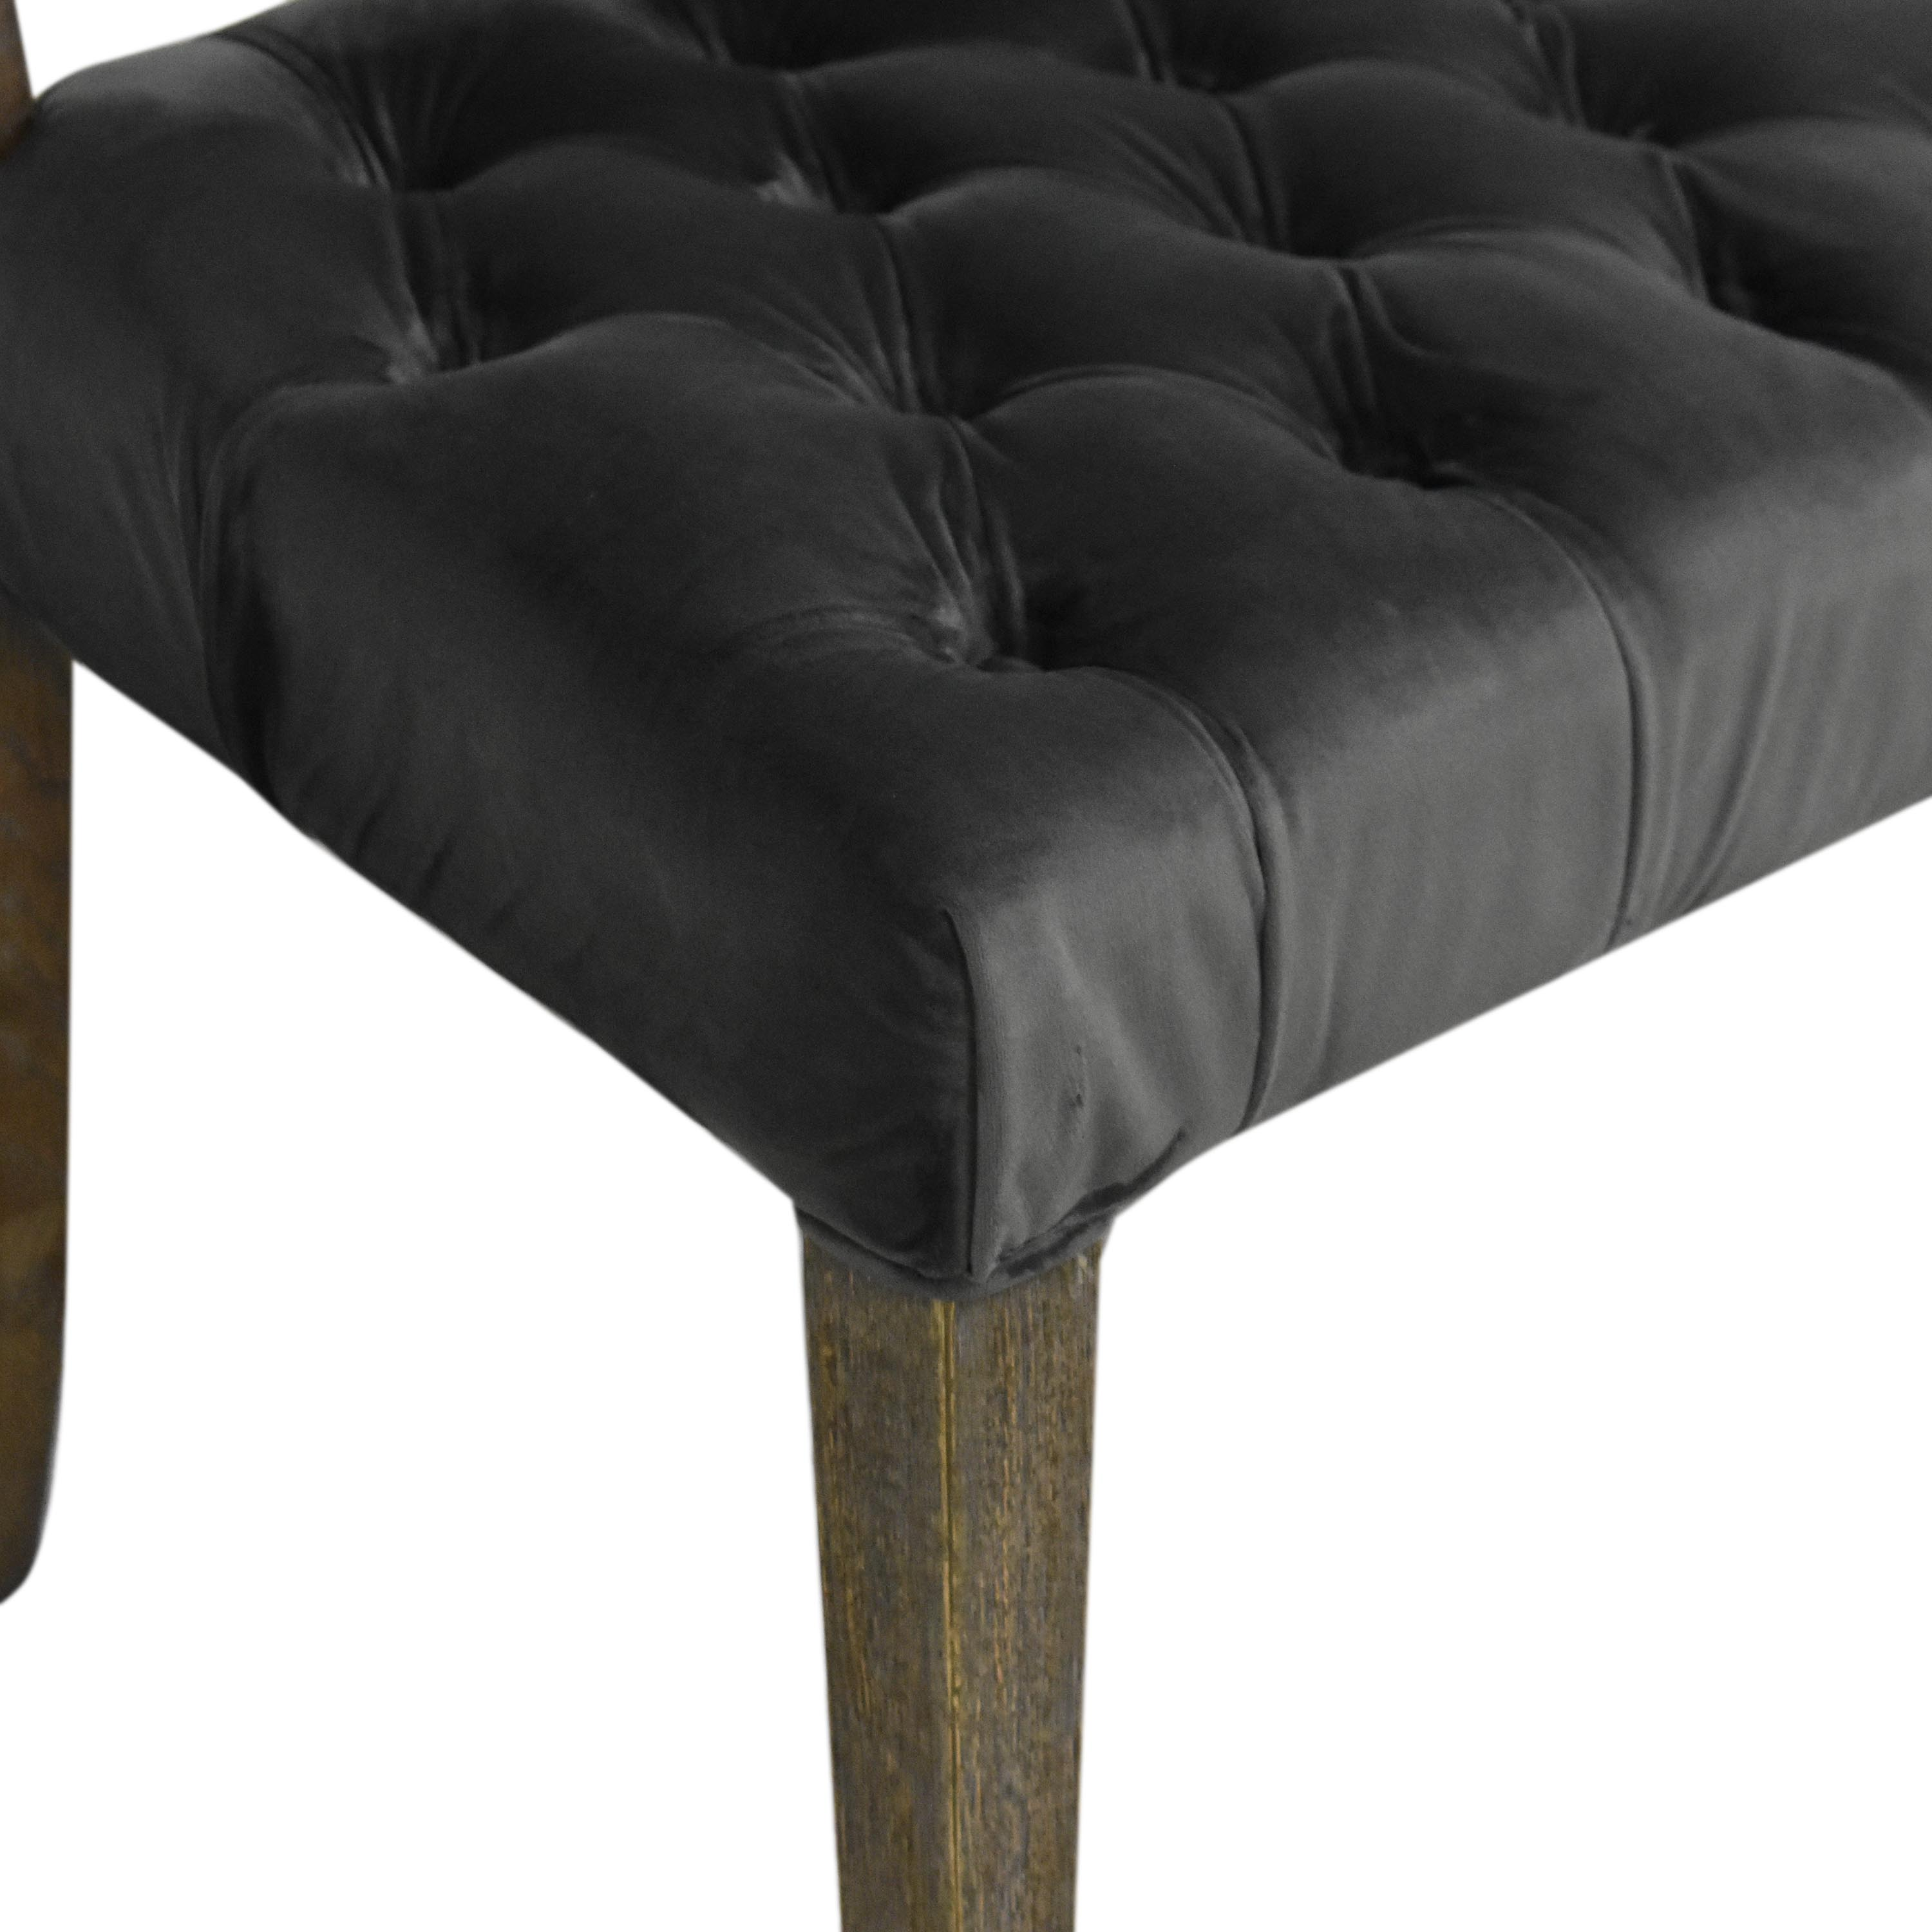 Christopher Knight Home Christopher Knight Saltillo Dining Chairs on sale